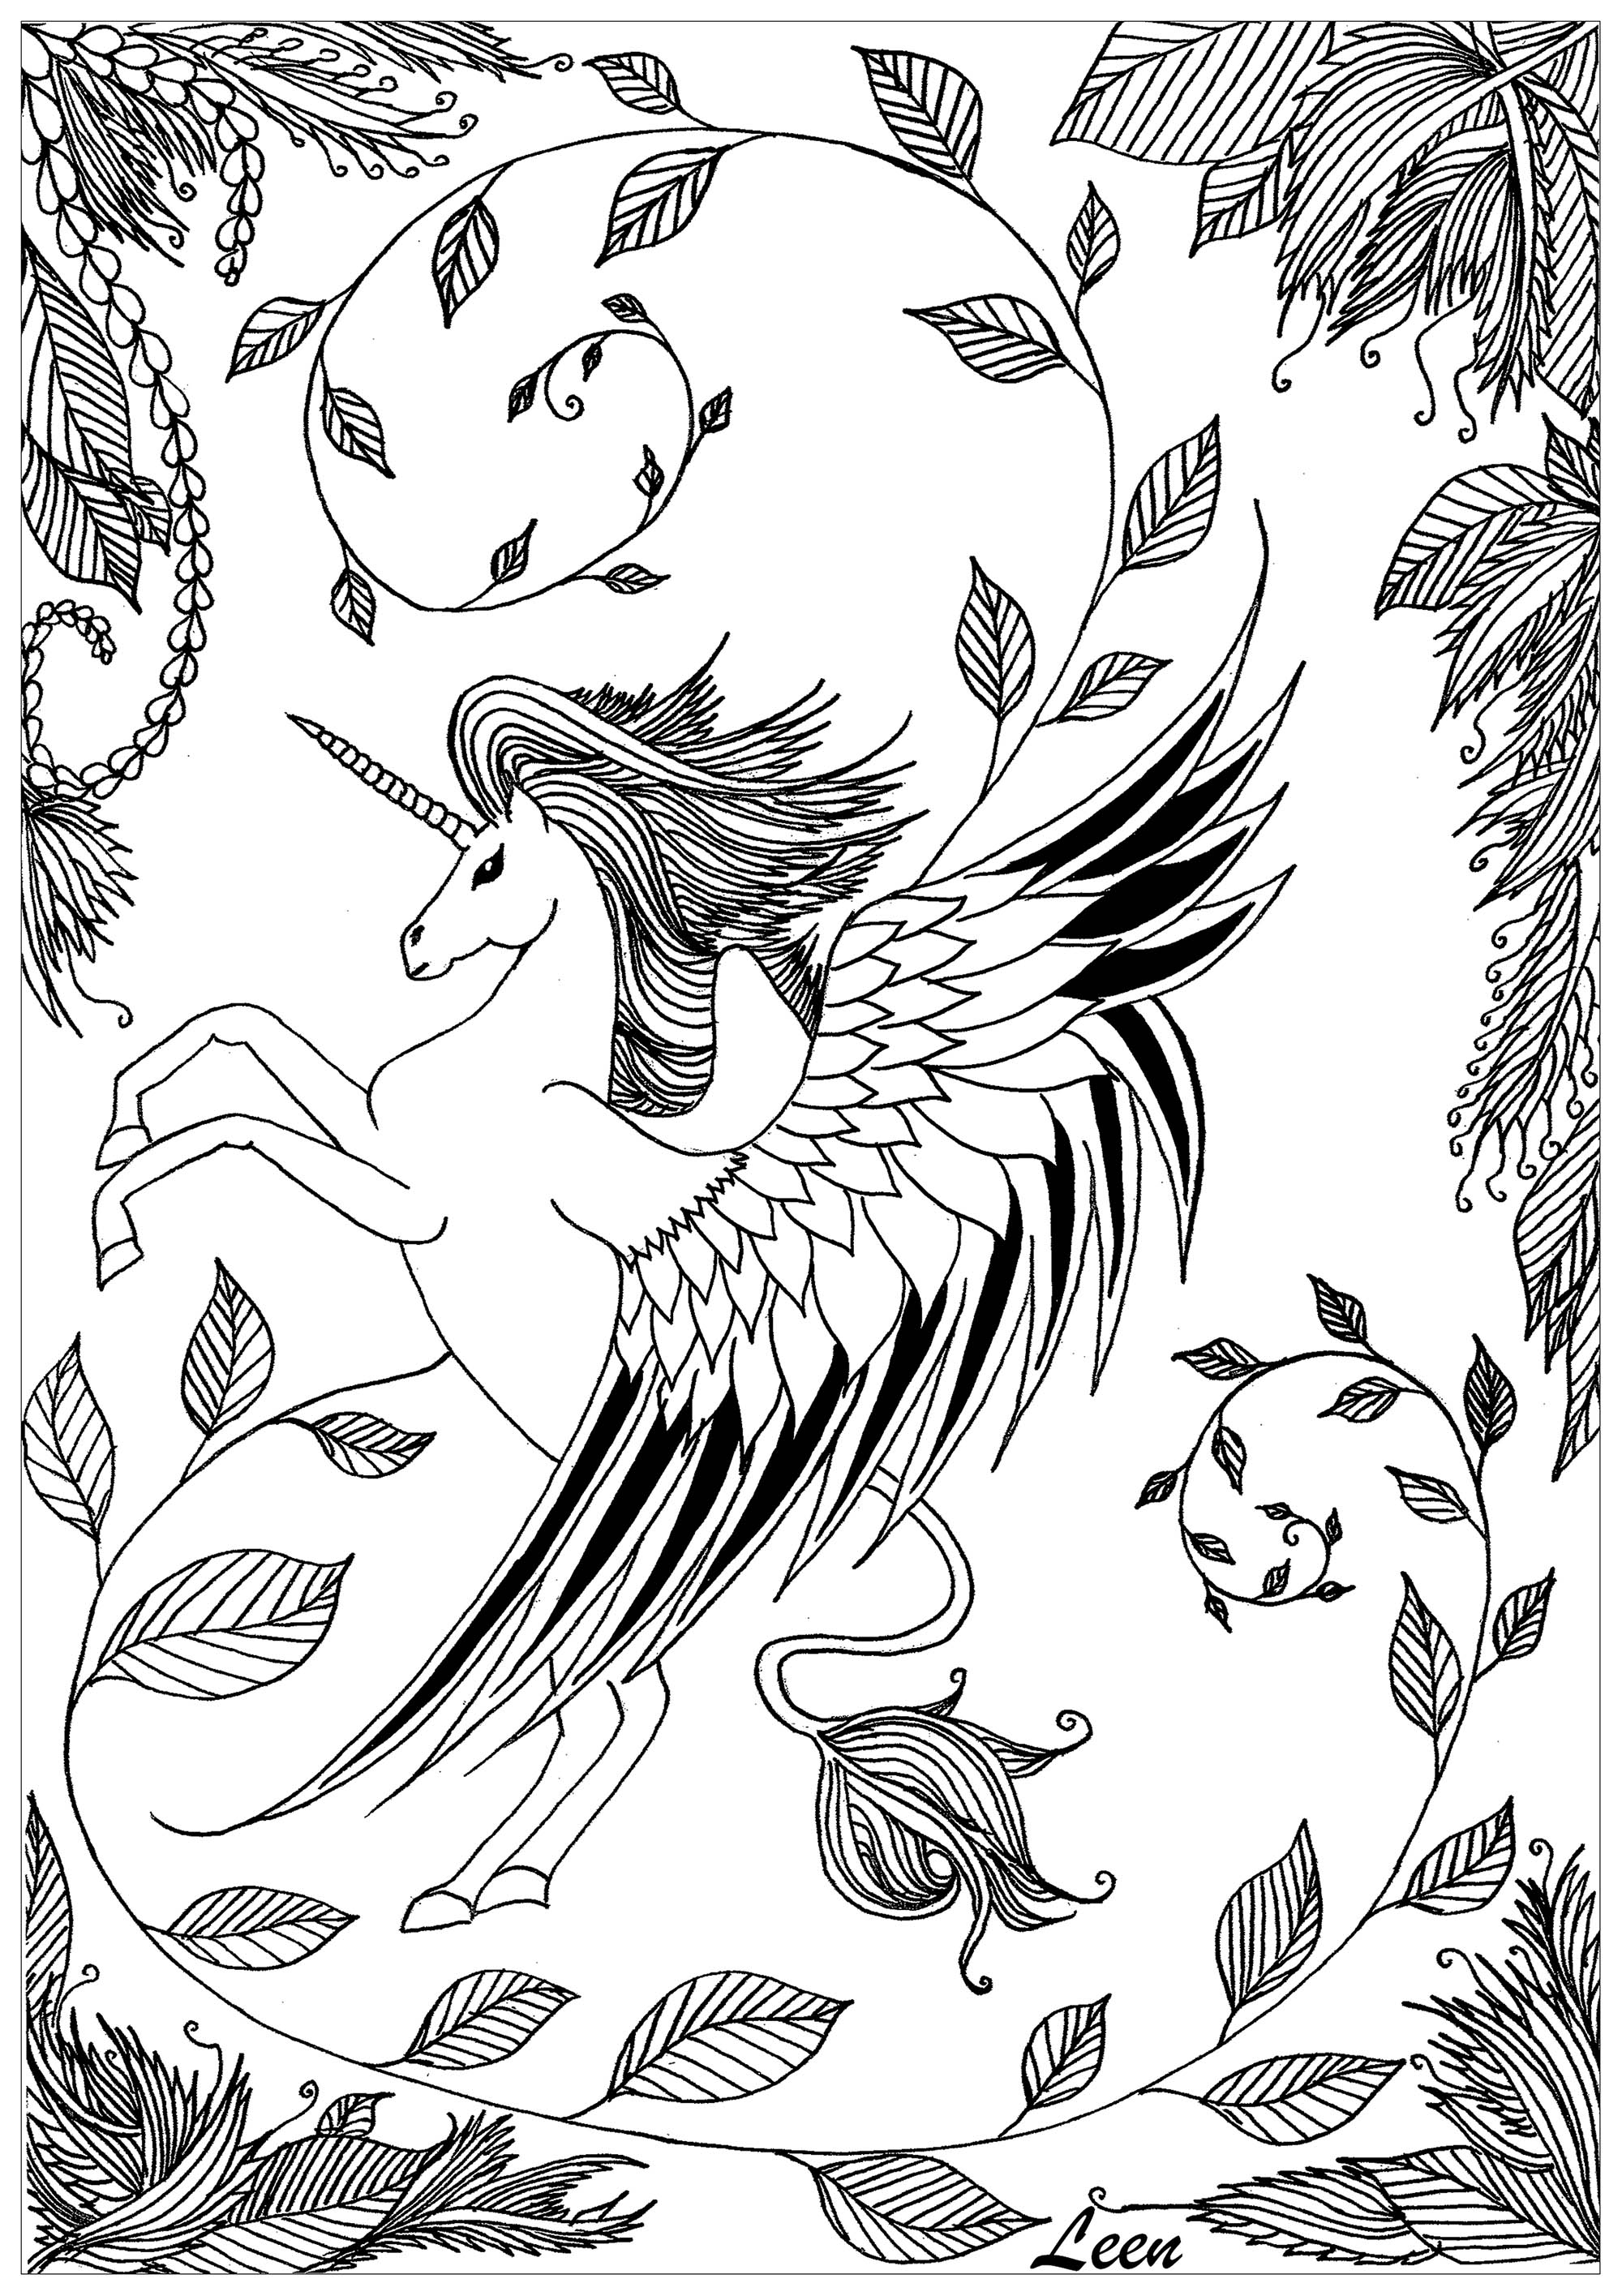 coloring pages for adults unicorn leen margot unicorn unicorns adult coloring pages pages for unicorn adults coloring